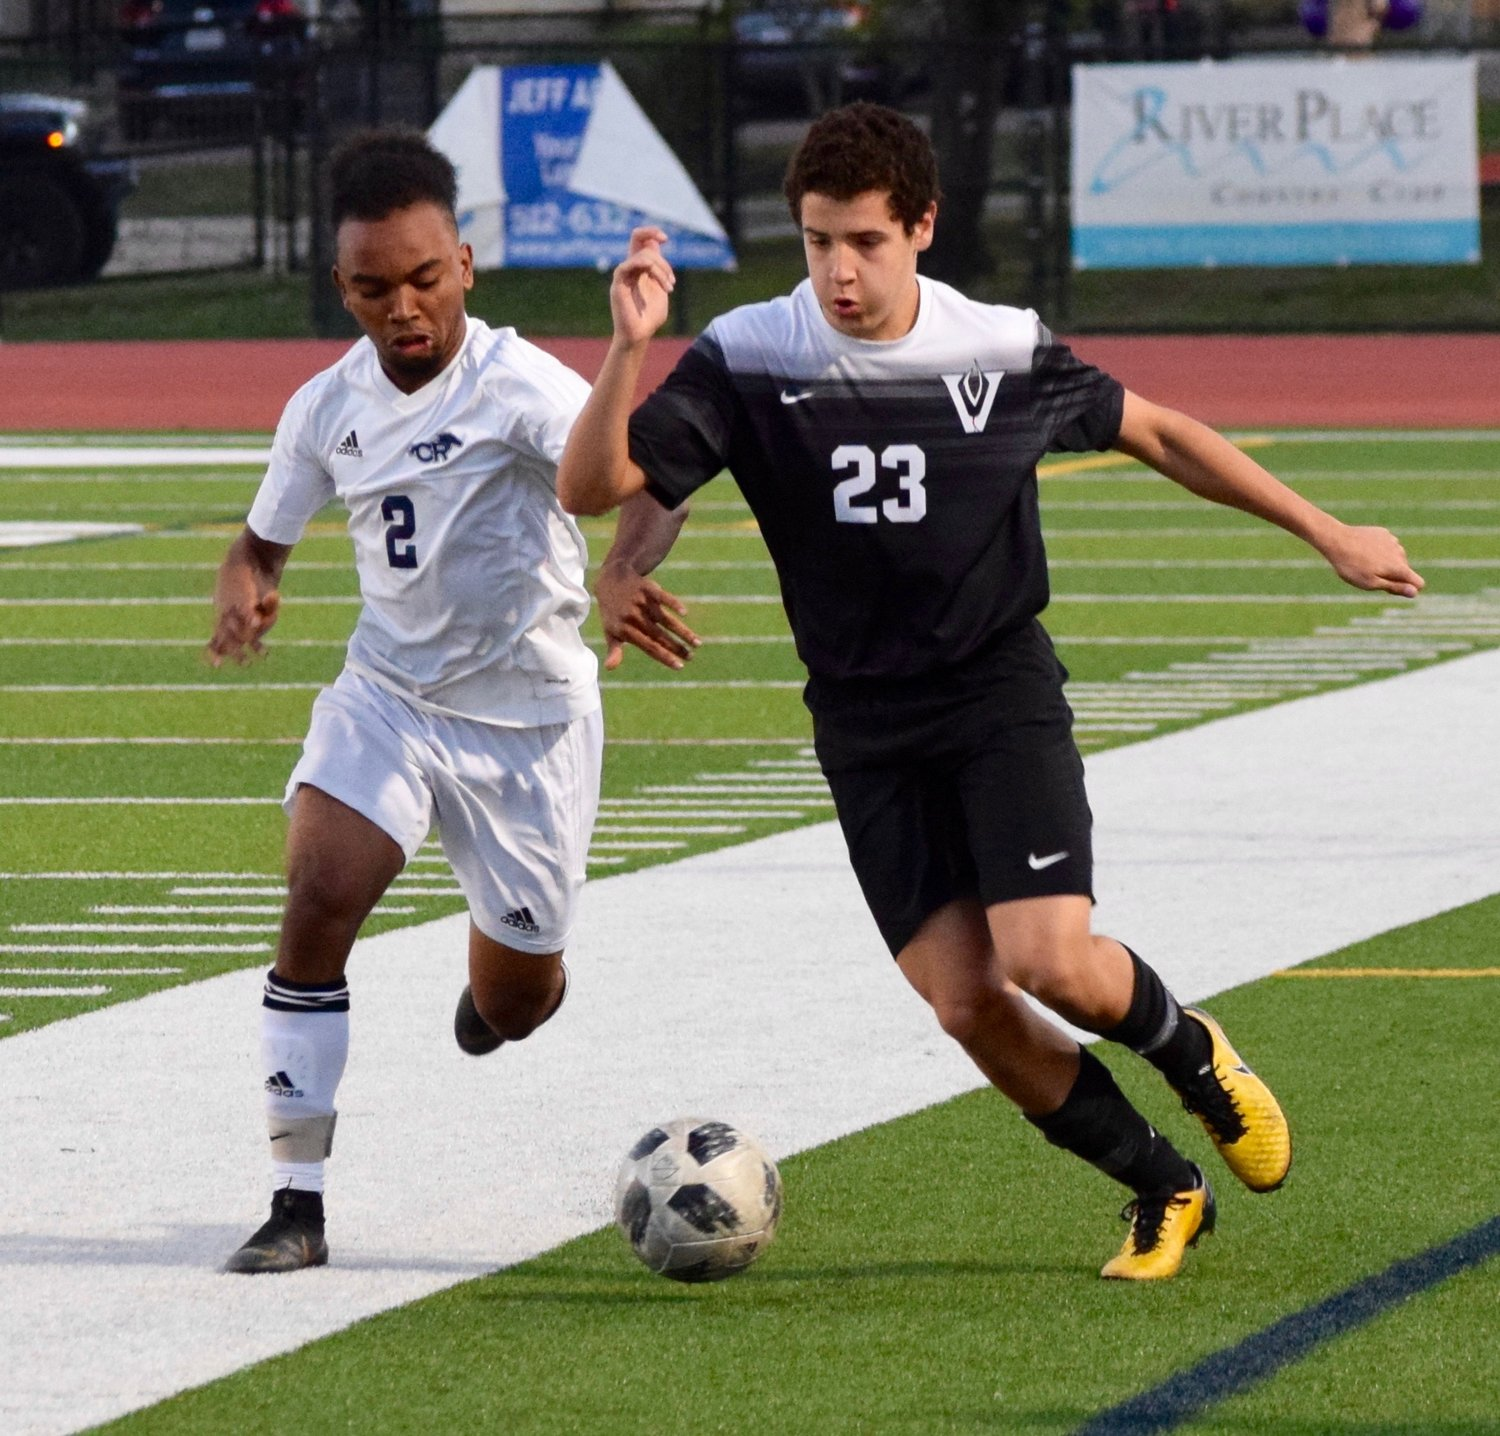 Patrick Donne and Vandegrift lost to Cy Ranch 2-1 in the bi-district round of the playoffs on Friday night.